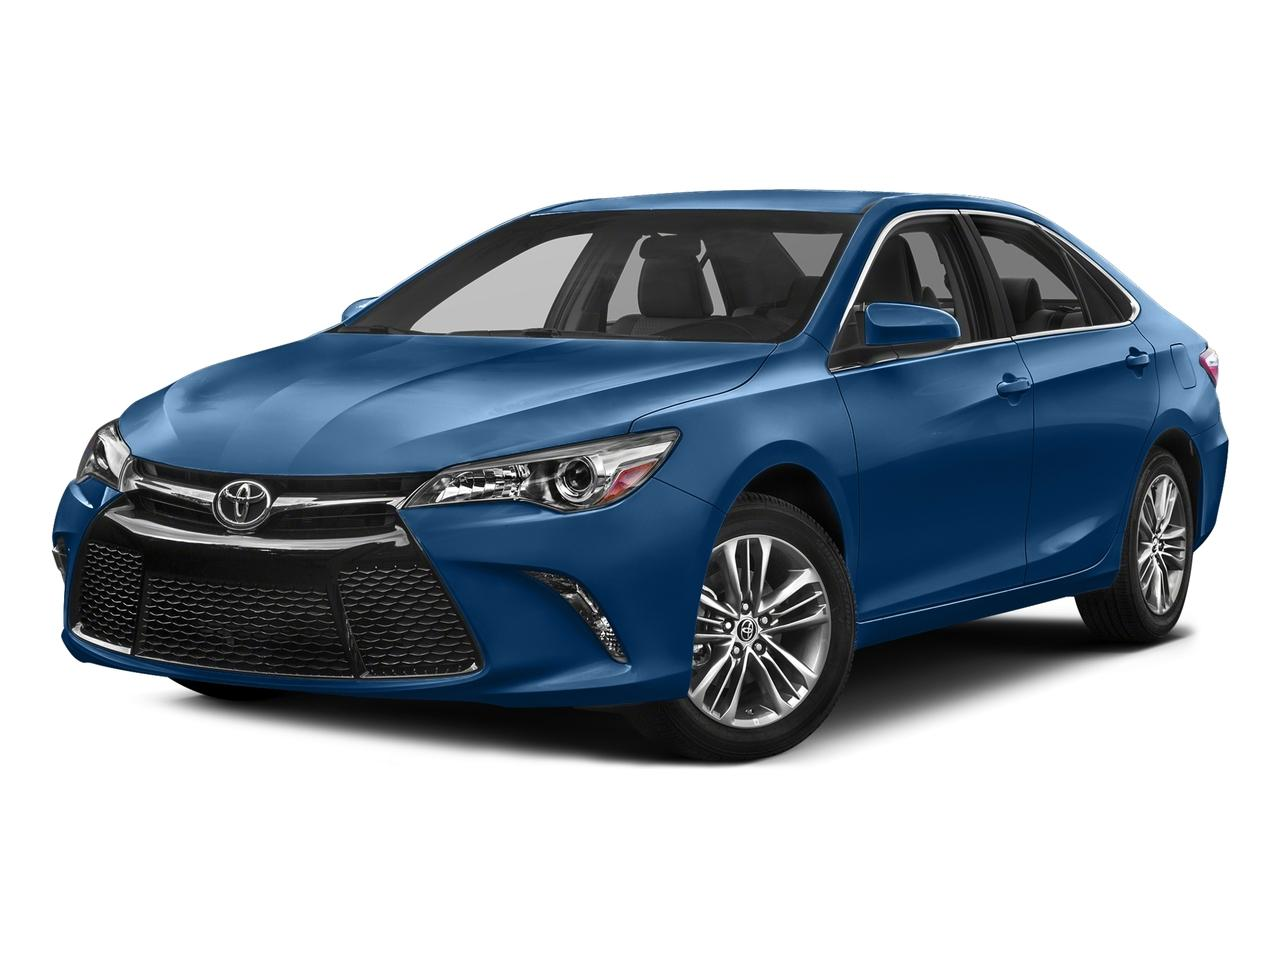 2017 Toyota Camry Vehicle Photo in Flemington, NJ 08822